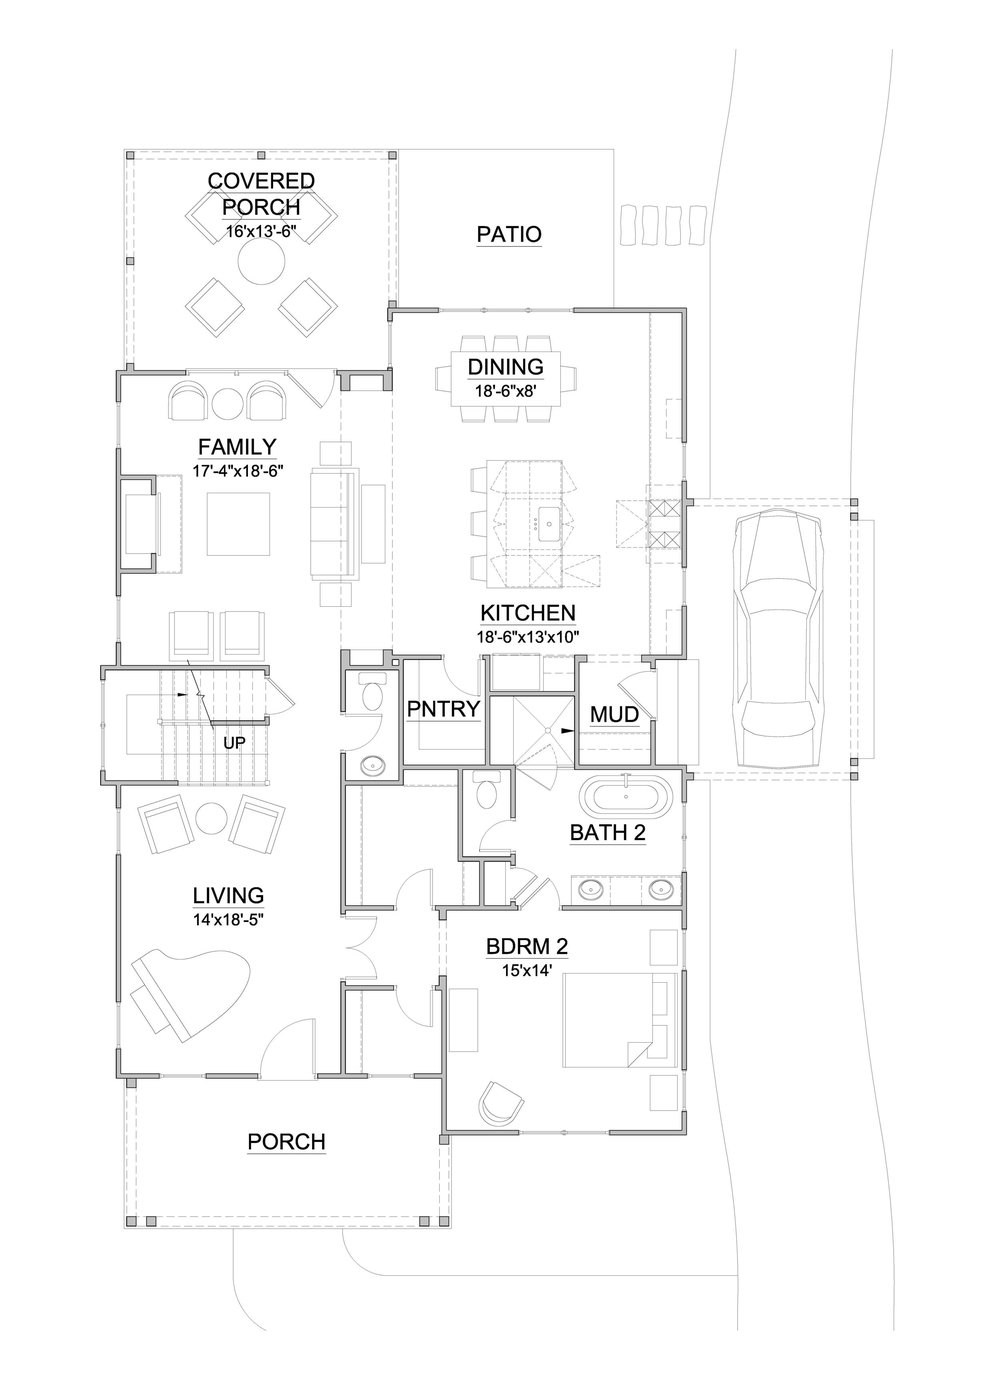 CC_First Floor_24x36.jpg